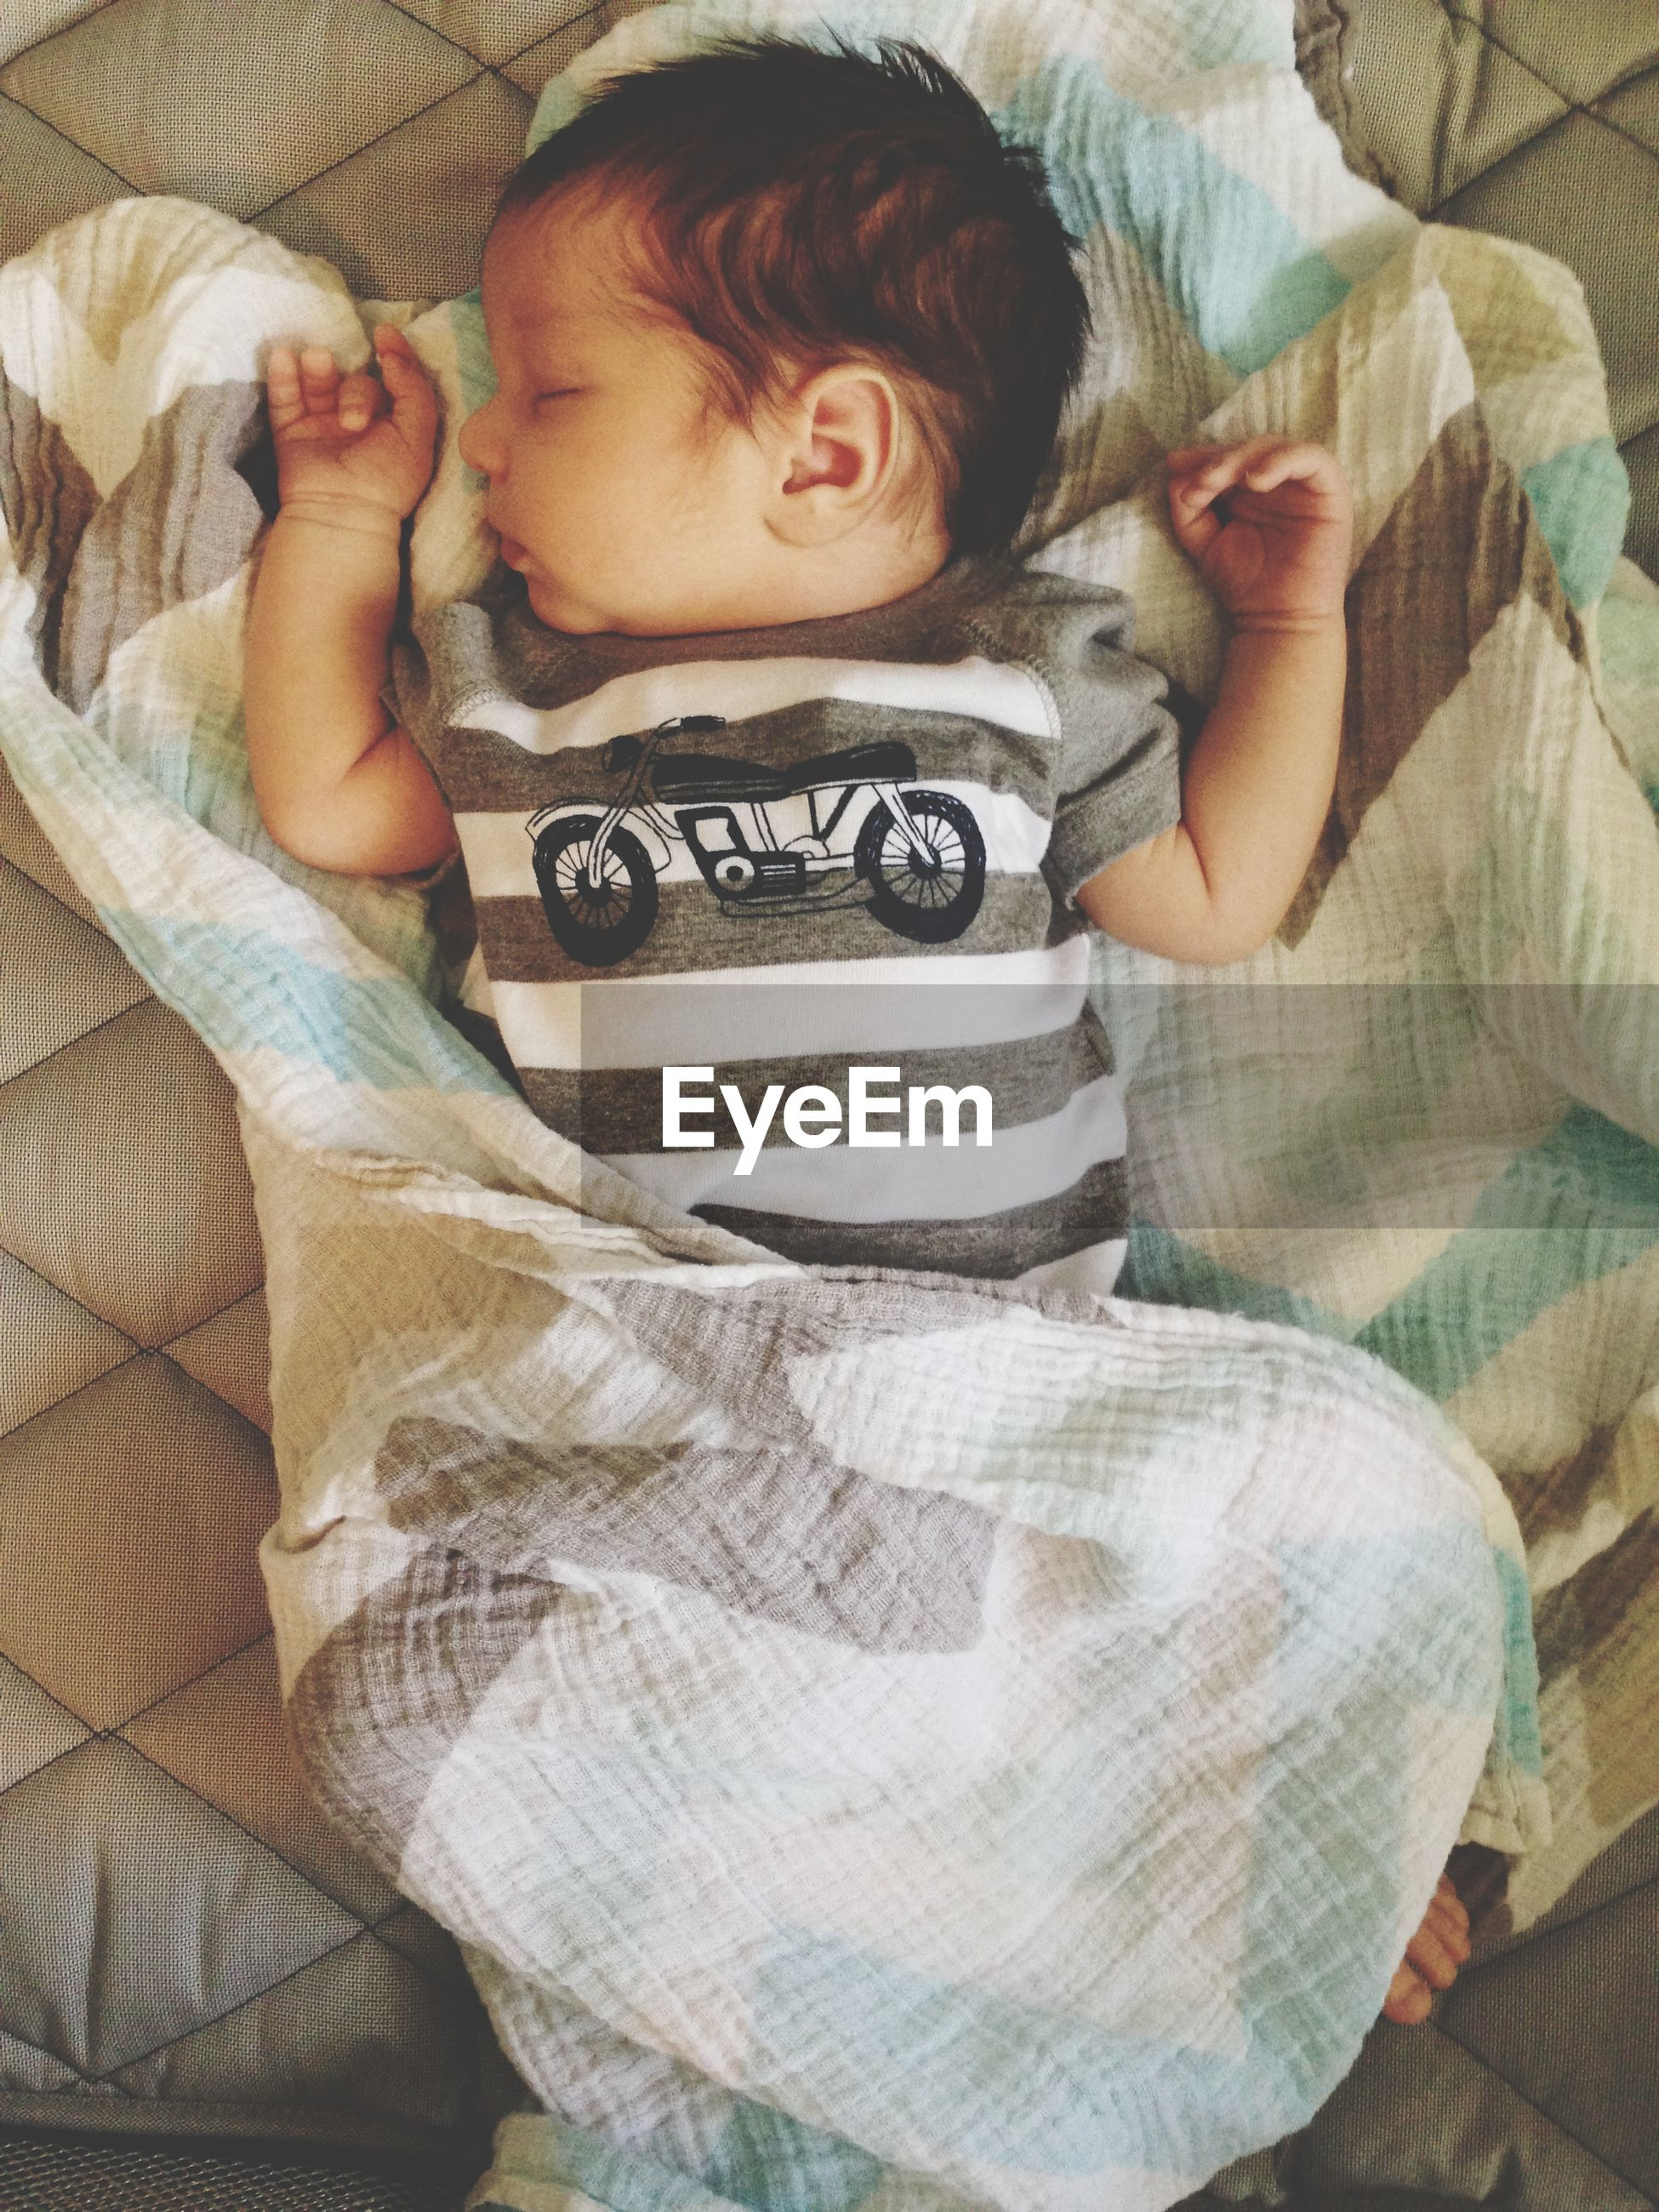 indoors, person, bed, childhood, lifestyles, relaxation, casual clothing, high angle view, leisure activity, home interior, innocence, bonding, lying down, baby, toddler, togetherness, sleeping, babyhood